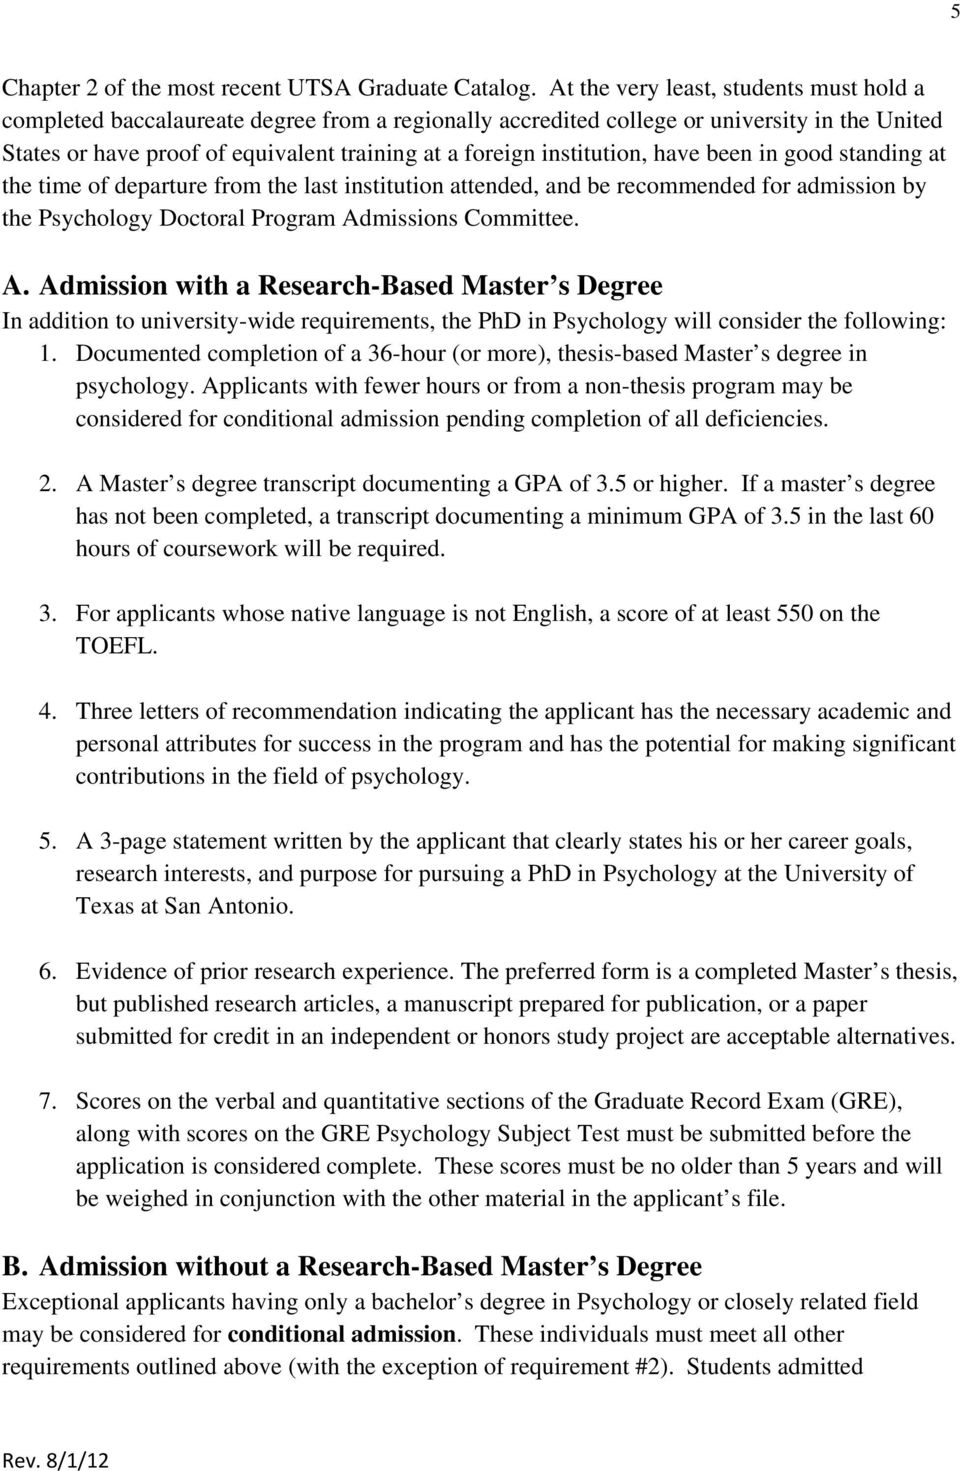 institution, have been in good standing at the time of departure from the last institution attended, and be recommended for admission by the Psychology Doctoral Program Ad